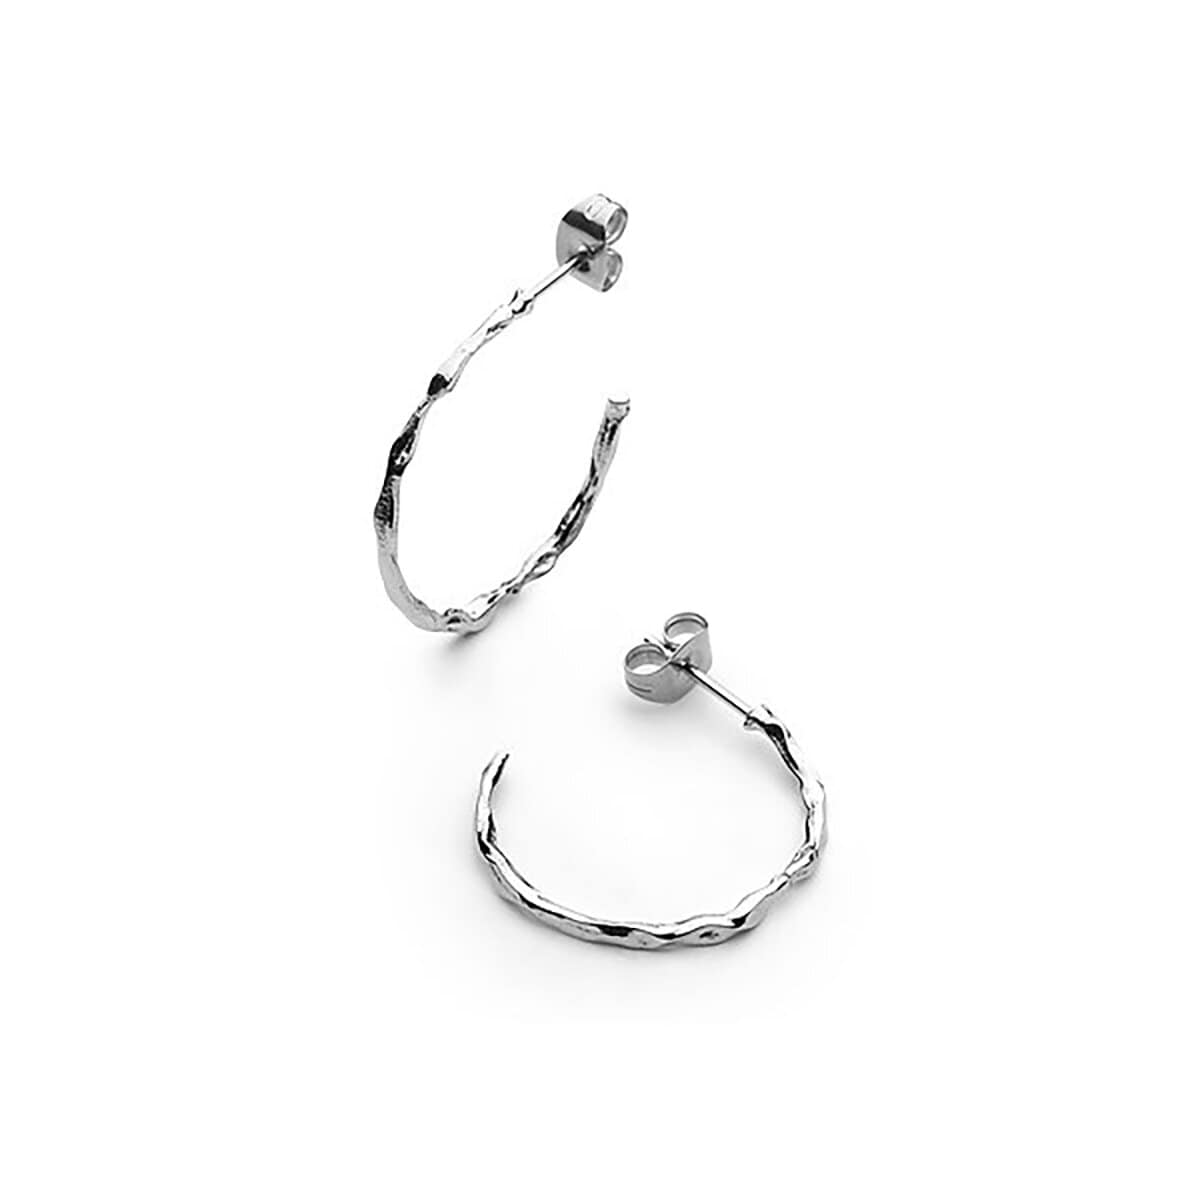 Chunky Loop Earring - Gold Plated